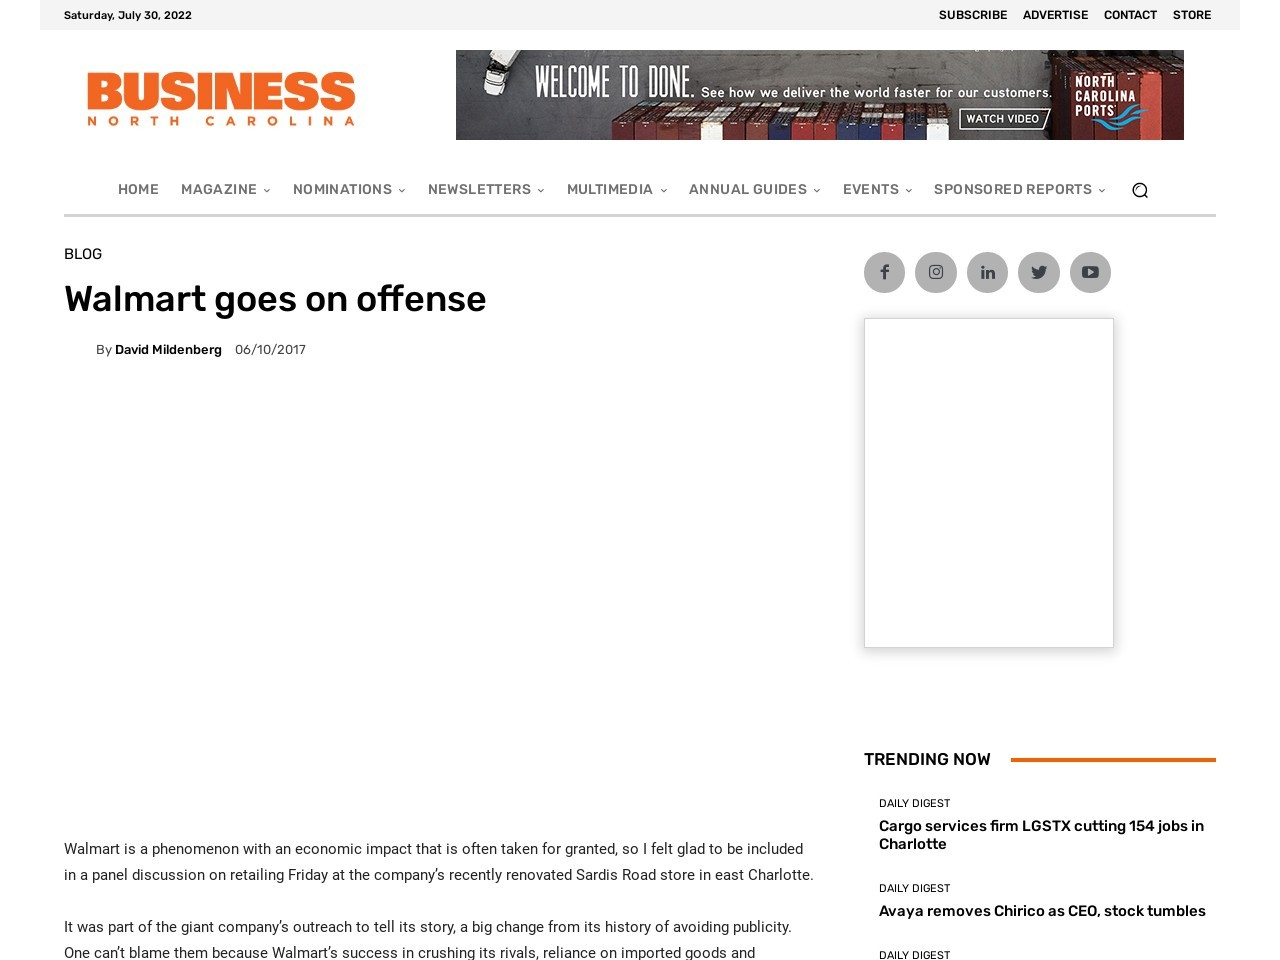 Threatened by Amazon, Walmart goes on the offense